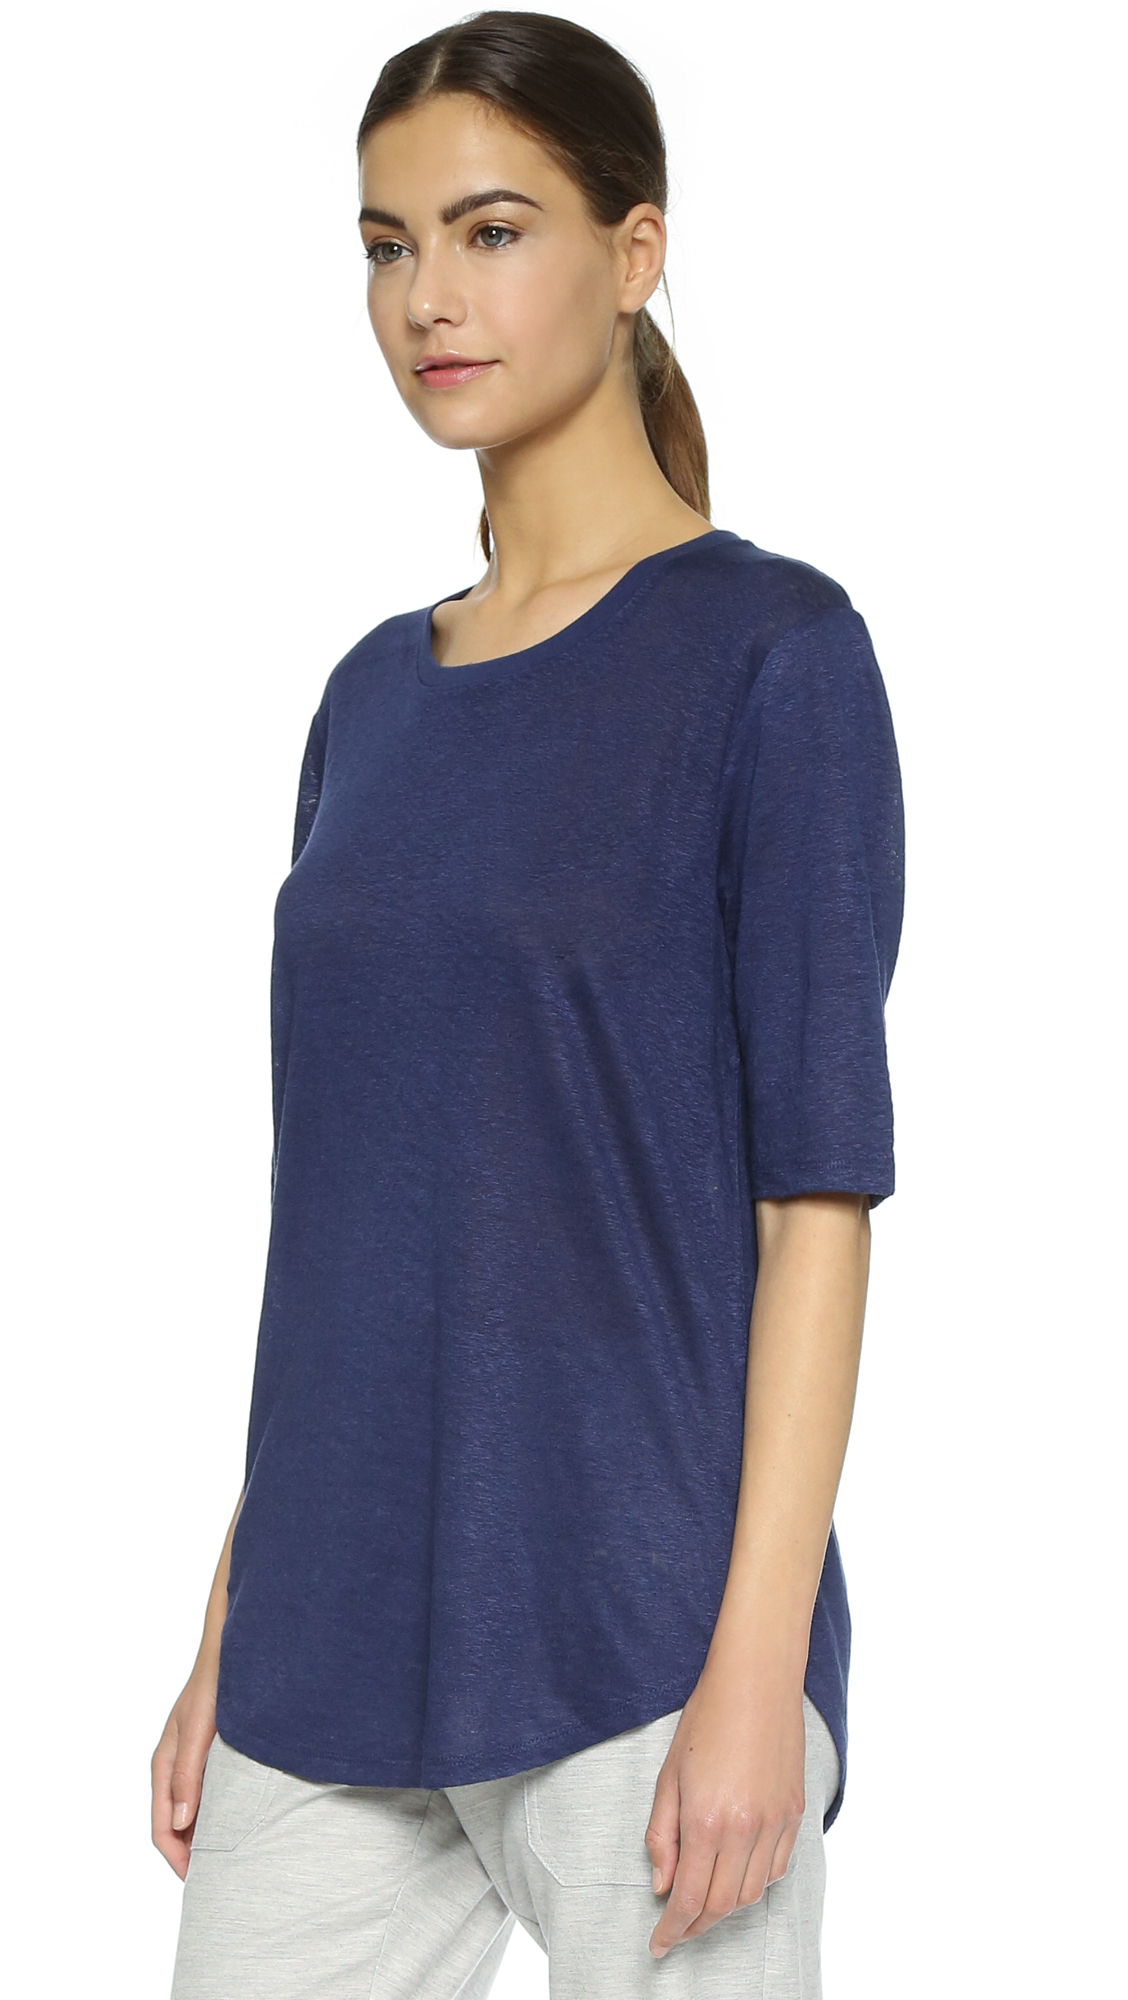 Lyst vince elbow sleeve tee blue marine in blue for Elbow length t shirts women s